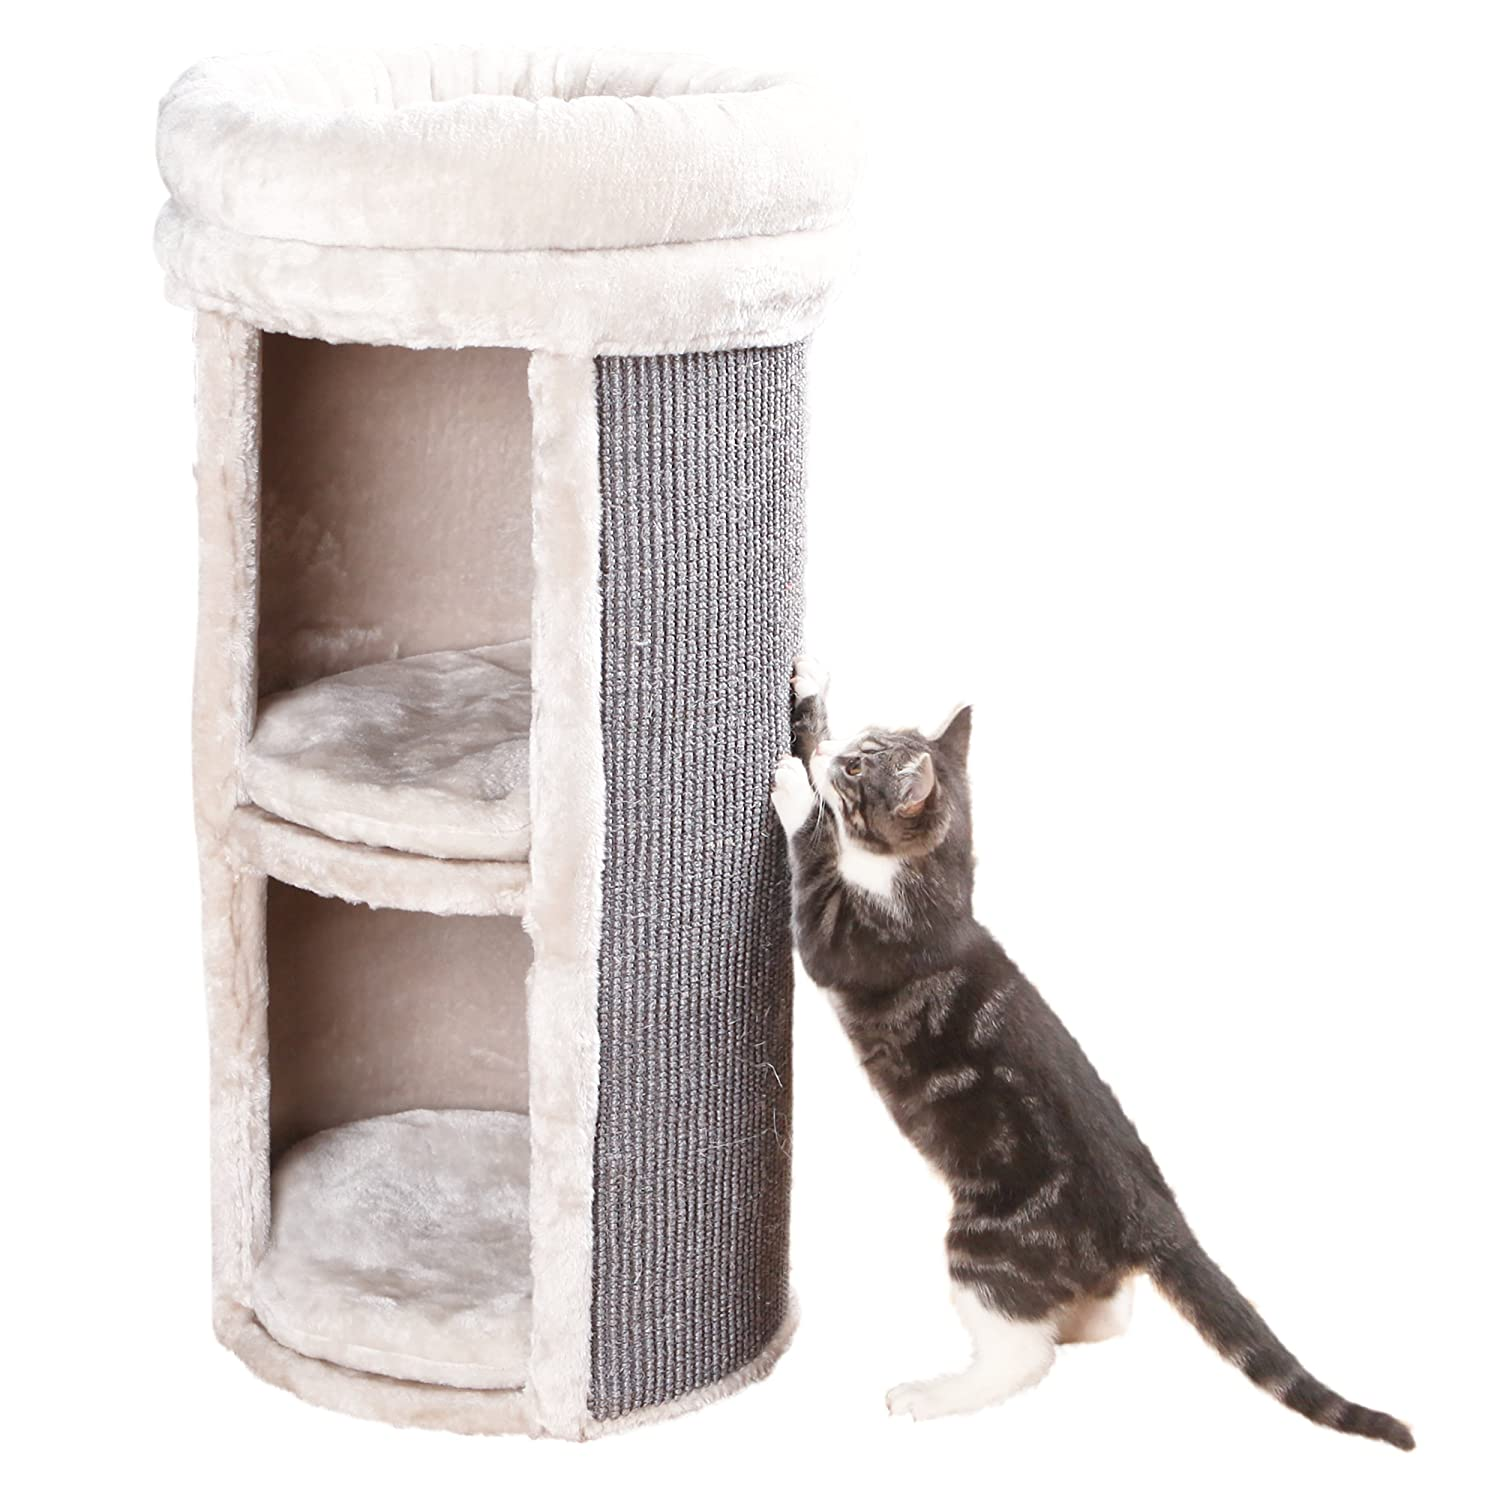 Amazon.com : TRIXIE Pet Products Mexia 2-Story Cat Tower, Gray : Pet on design security inc, design construction, design guild homes, design house inc, design homes ceo, design technology inc,